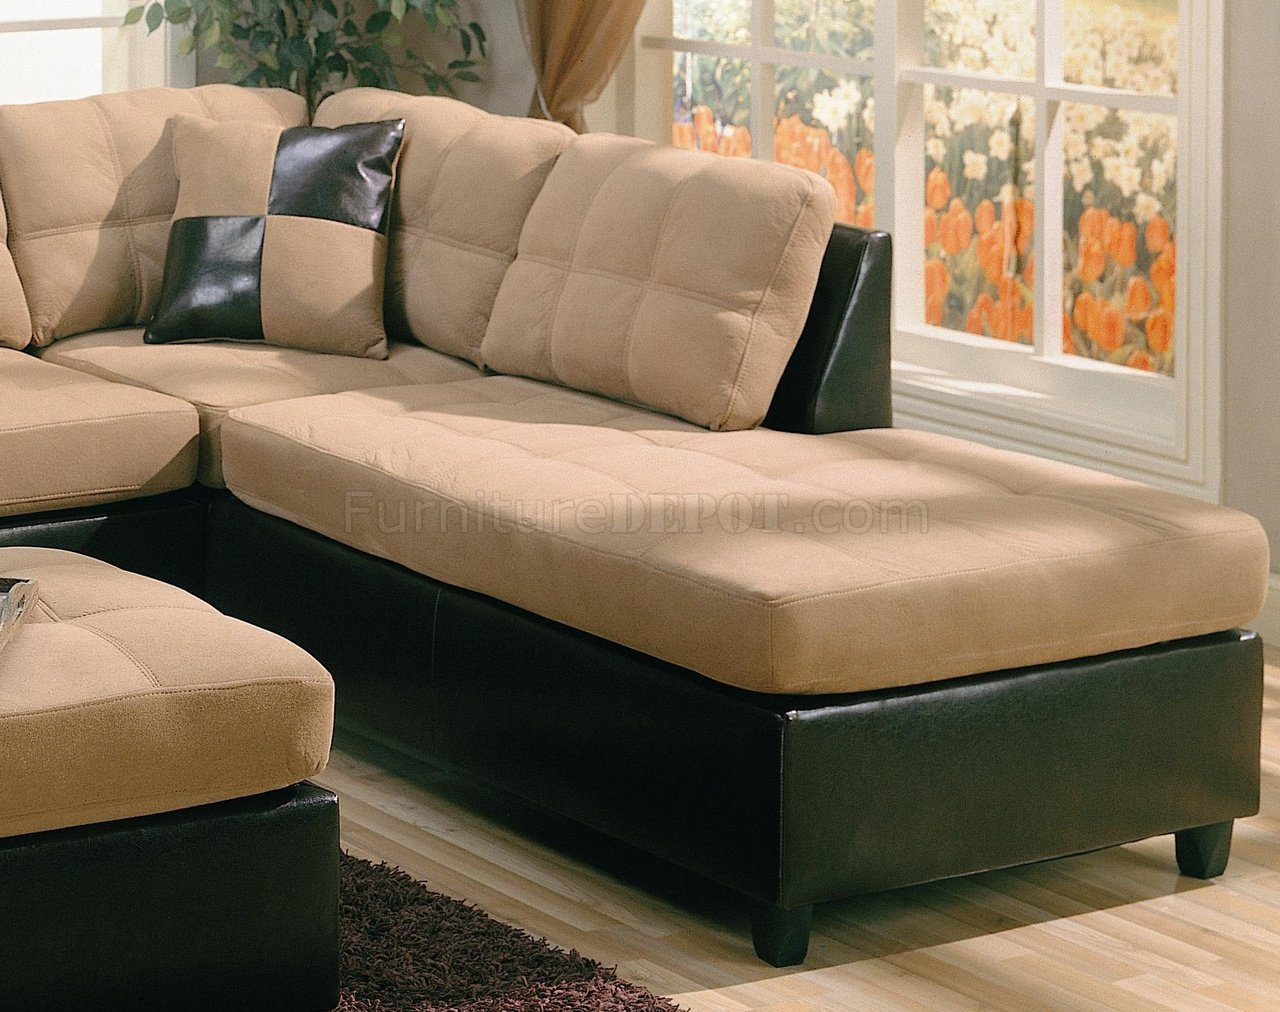 dark brown microfiber sofa beds londonderry two tone tan and faux leather